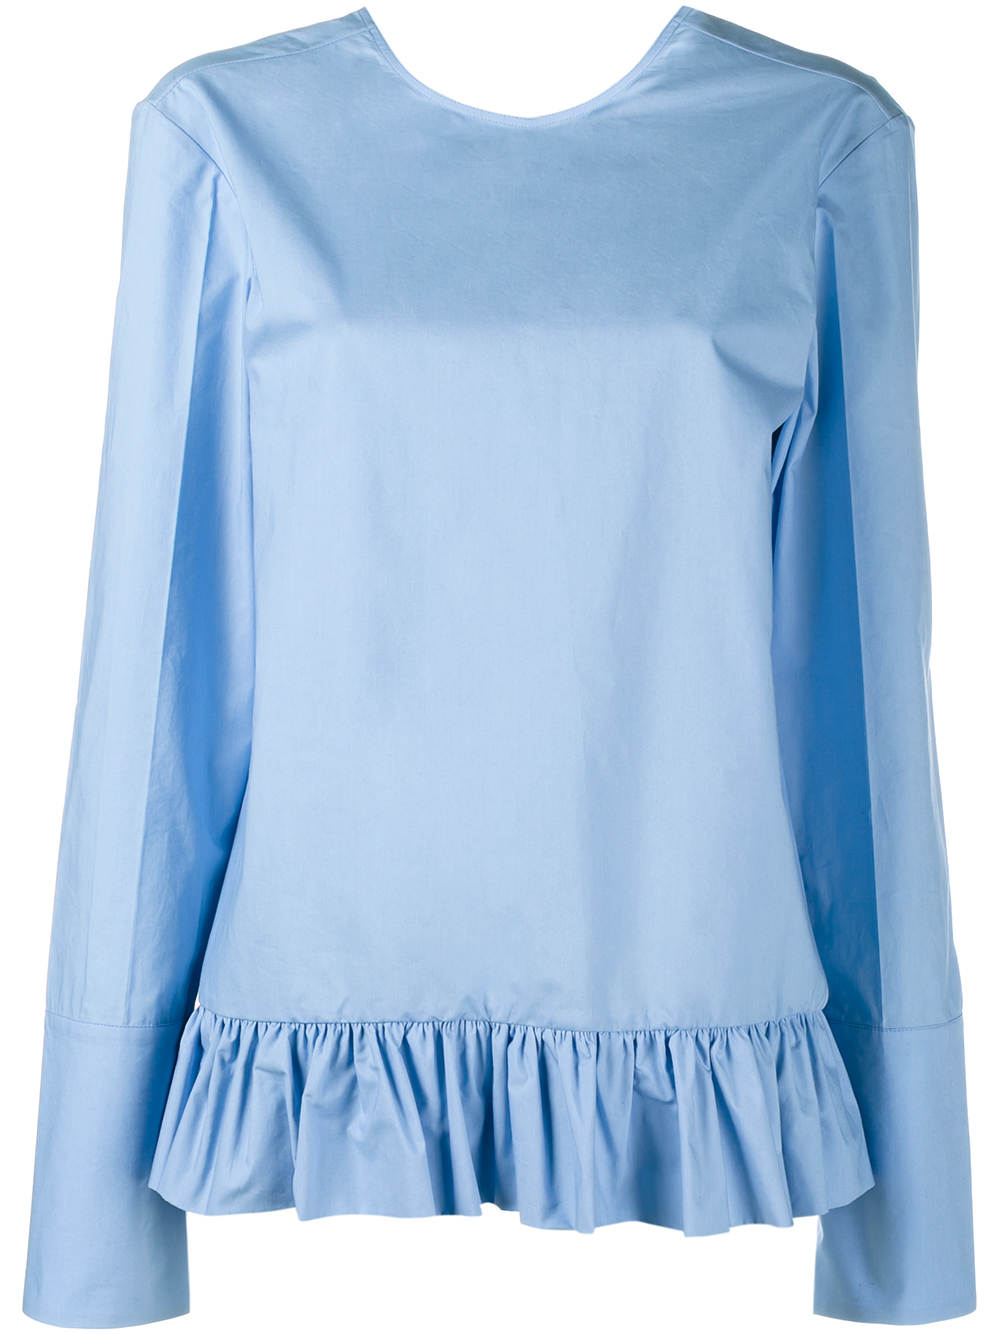 Buy the latest blue ruffle shirt cheap shop fashion style with free shipping, and check out our daily updated new arrival blue ruffle shirt at liveblog.ga